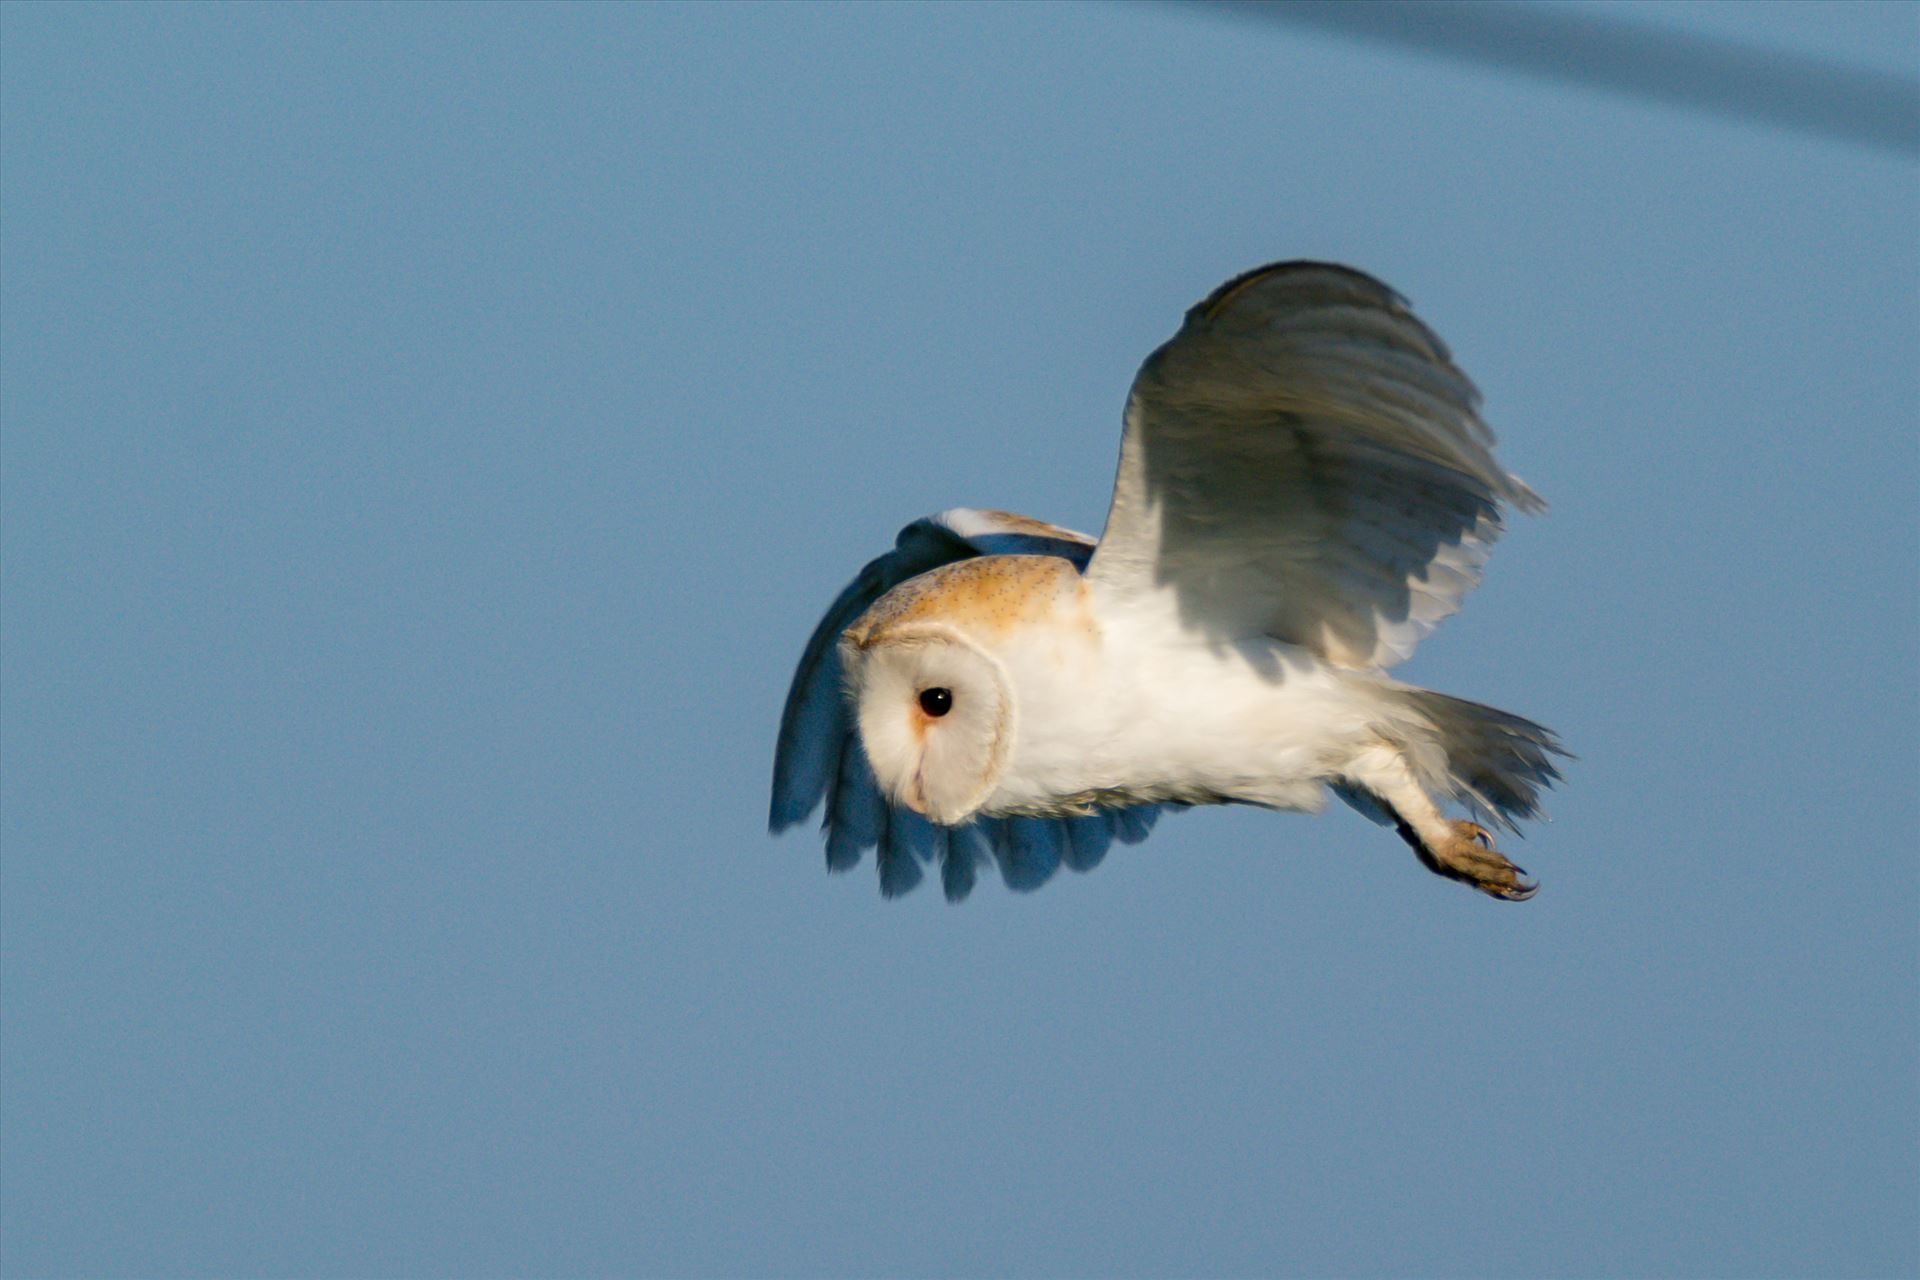 Barn Owl on the hunt 06 - A Barn Owl on the hunt for its breakfast by AJ Stoves Photography